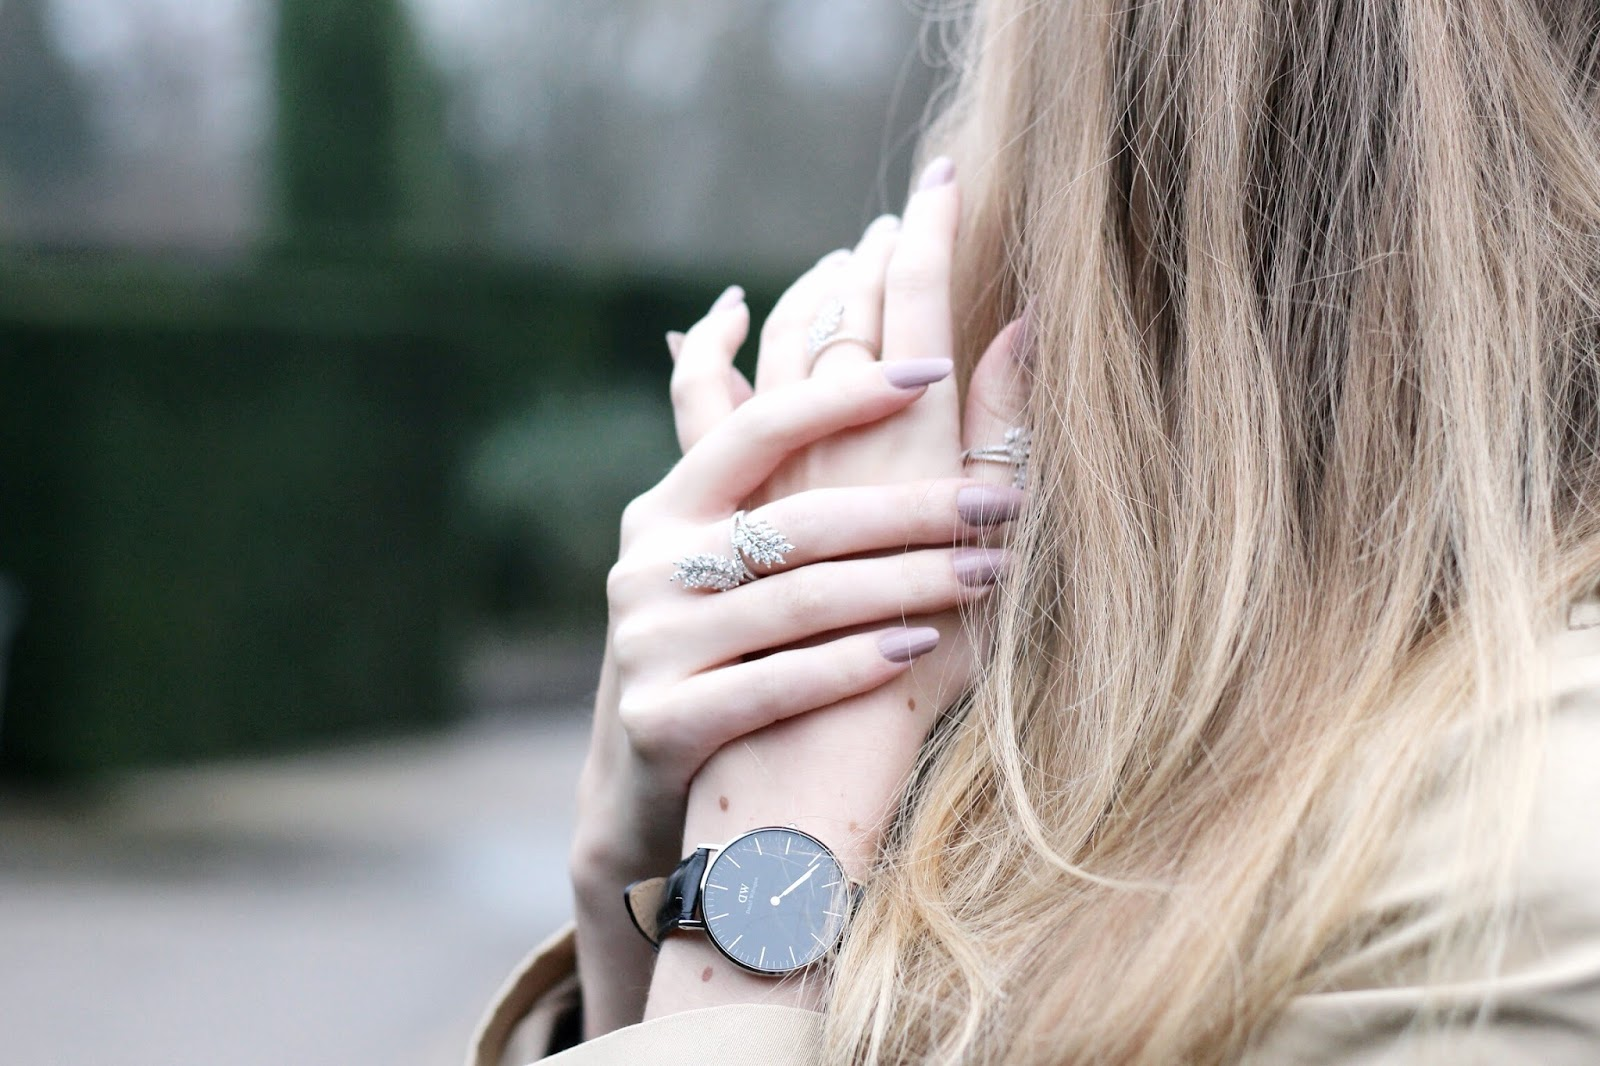 Evening look for hands featuring watch jewellery and manicure